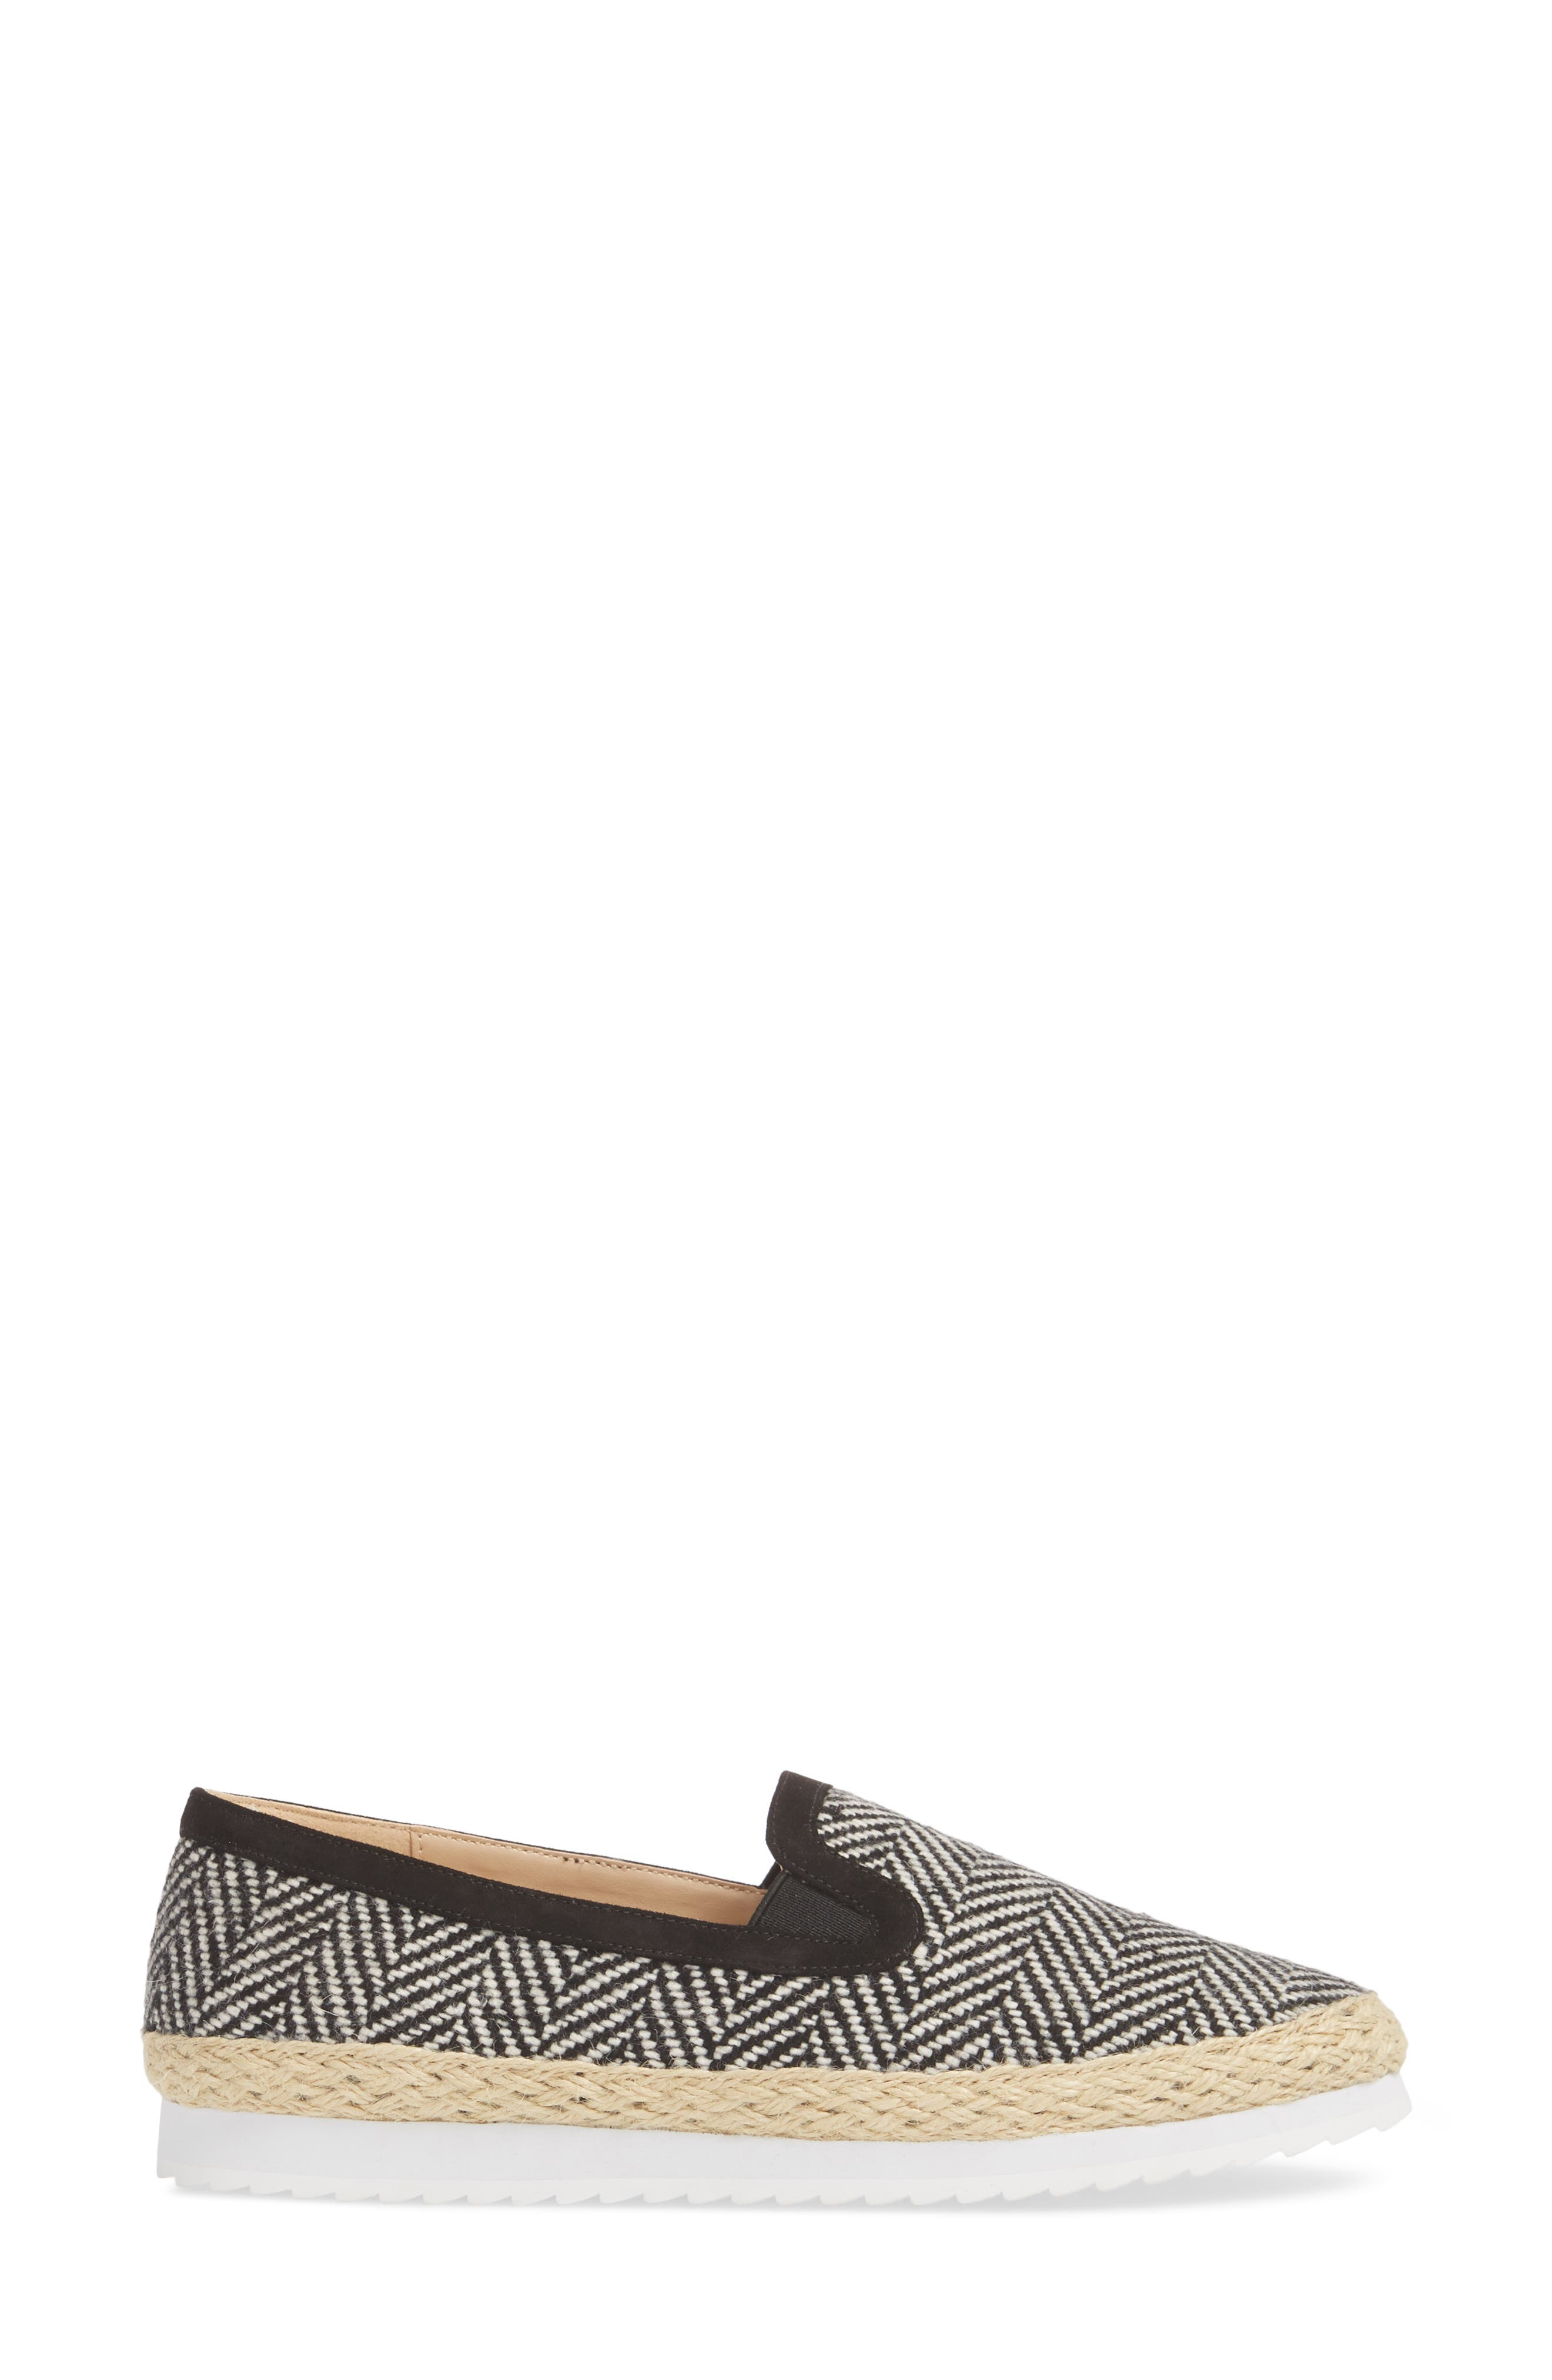 Tight Line Espadrille Flat,                             Alternate thumbnail 3, color,                             BLACK HOUNDSTOOTH FABRIC